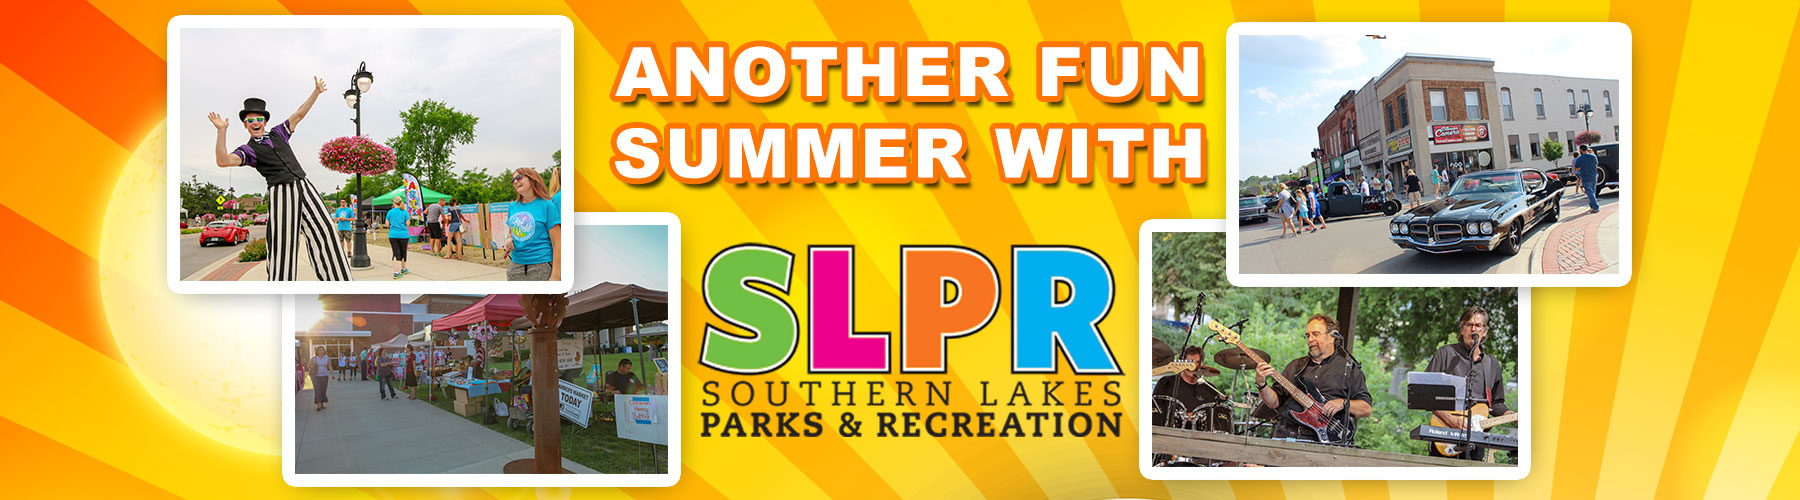 View the 2019 Summer Events